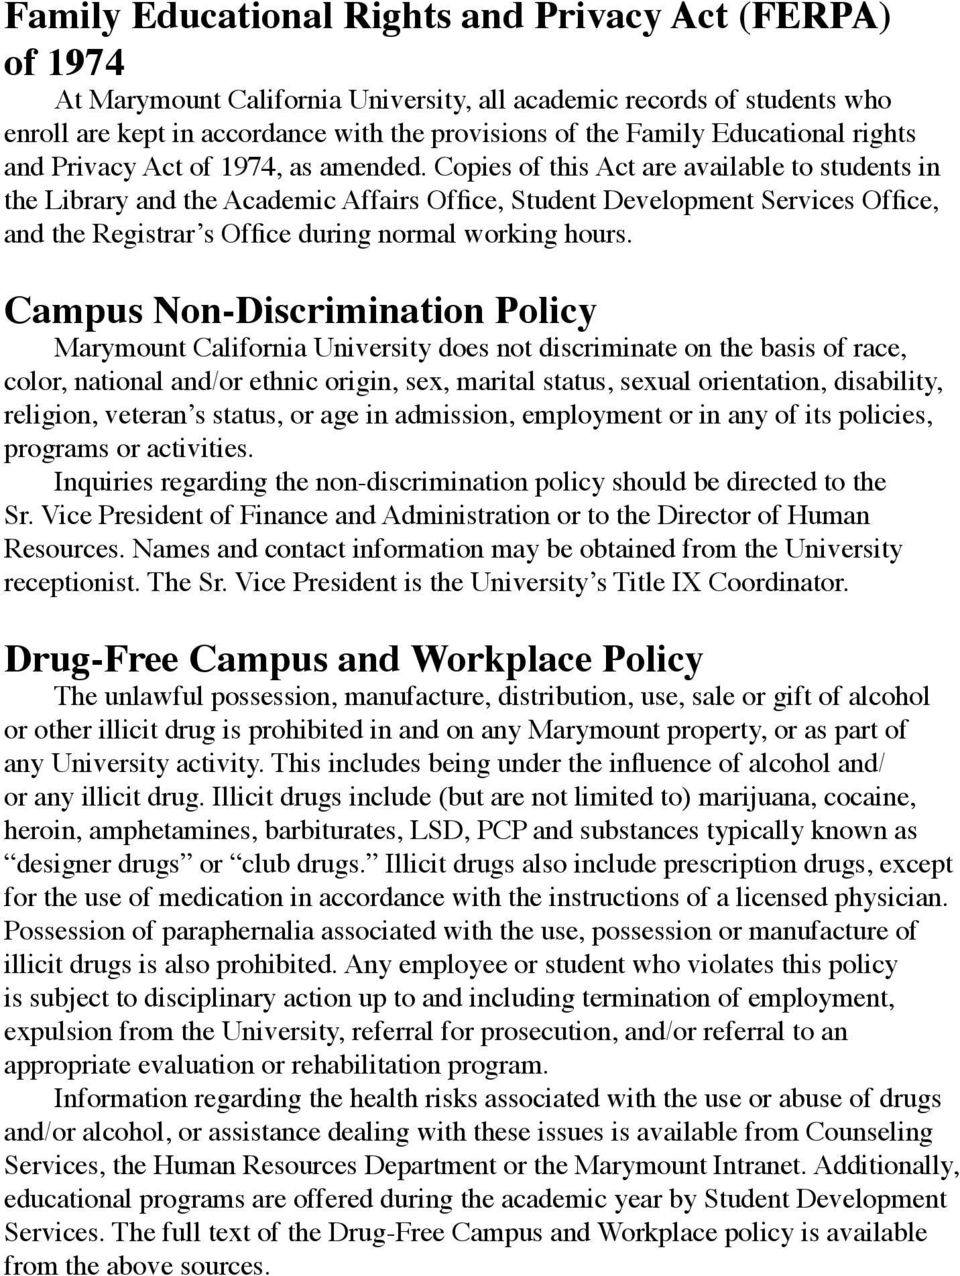 Copies of this act are available to students in the Library and the Academic Affairs Office, Student Development Services Office, and the Registrar s Office during normal working hours.